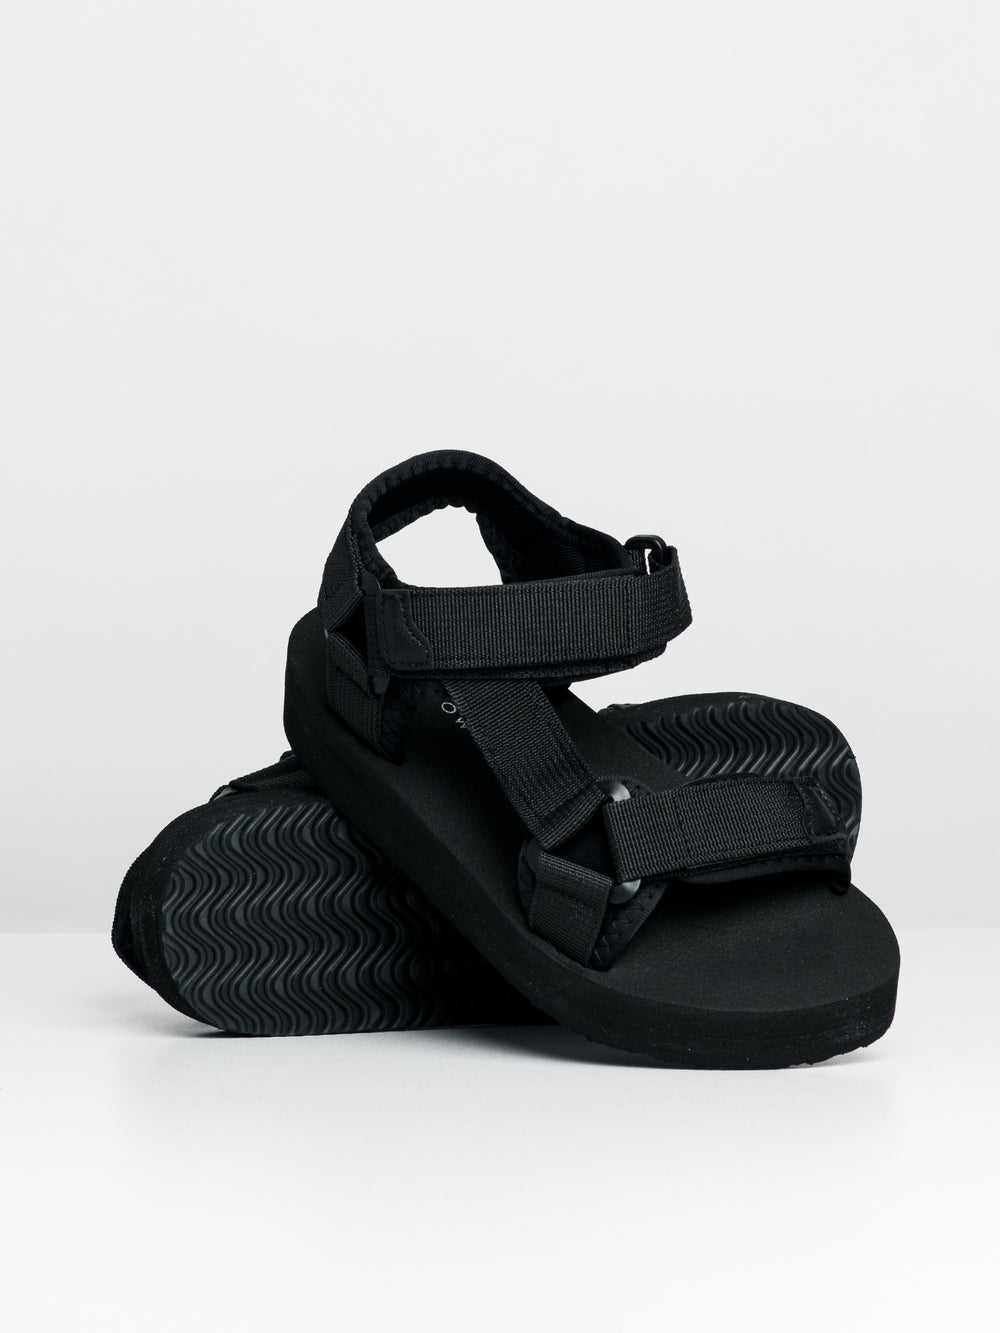 WOMENS NIVI - BLACK-D2